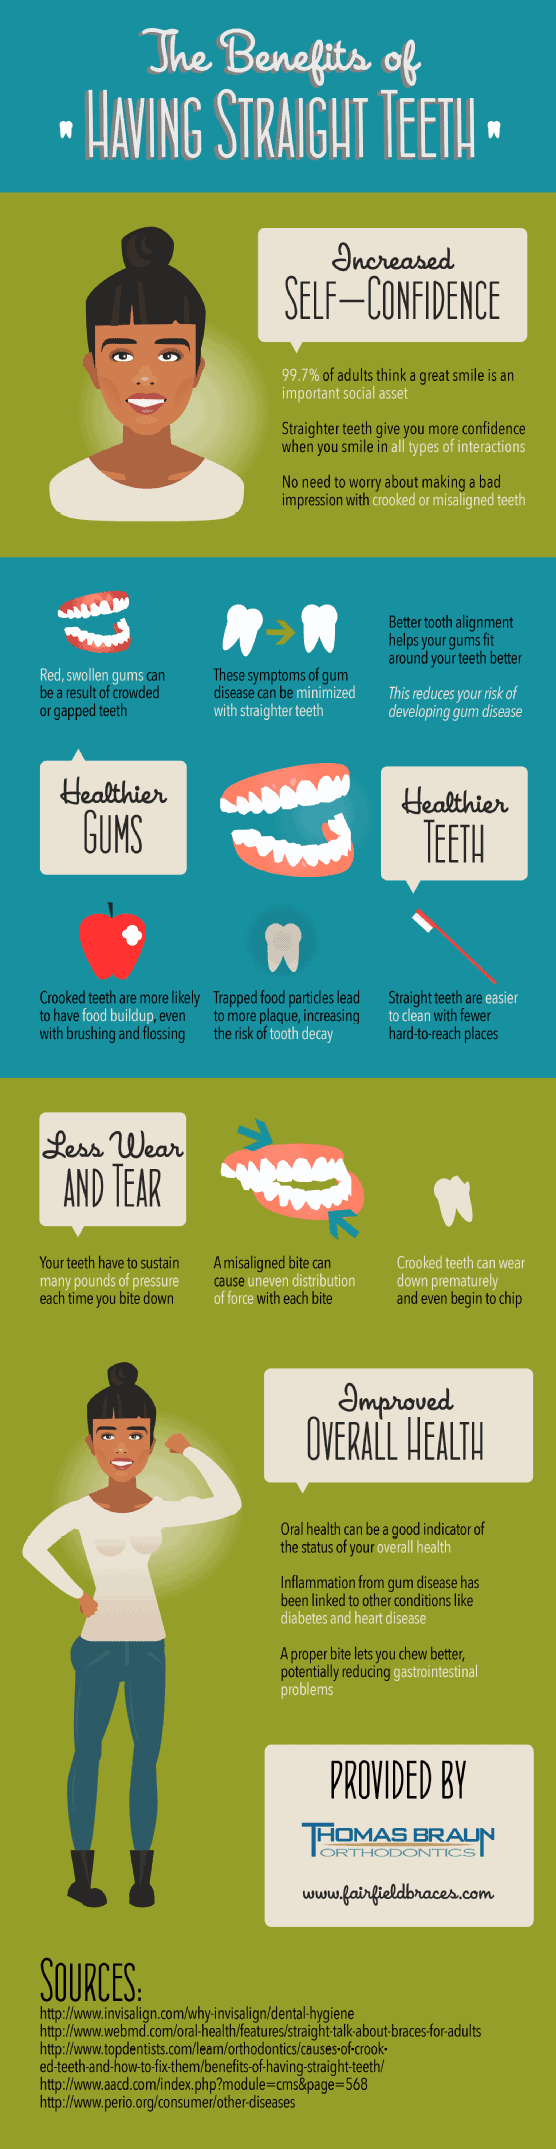 Benefits of Having Straight Teeth Infographic